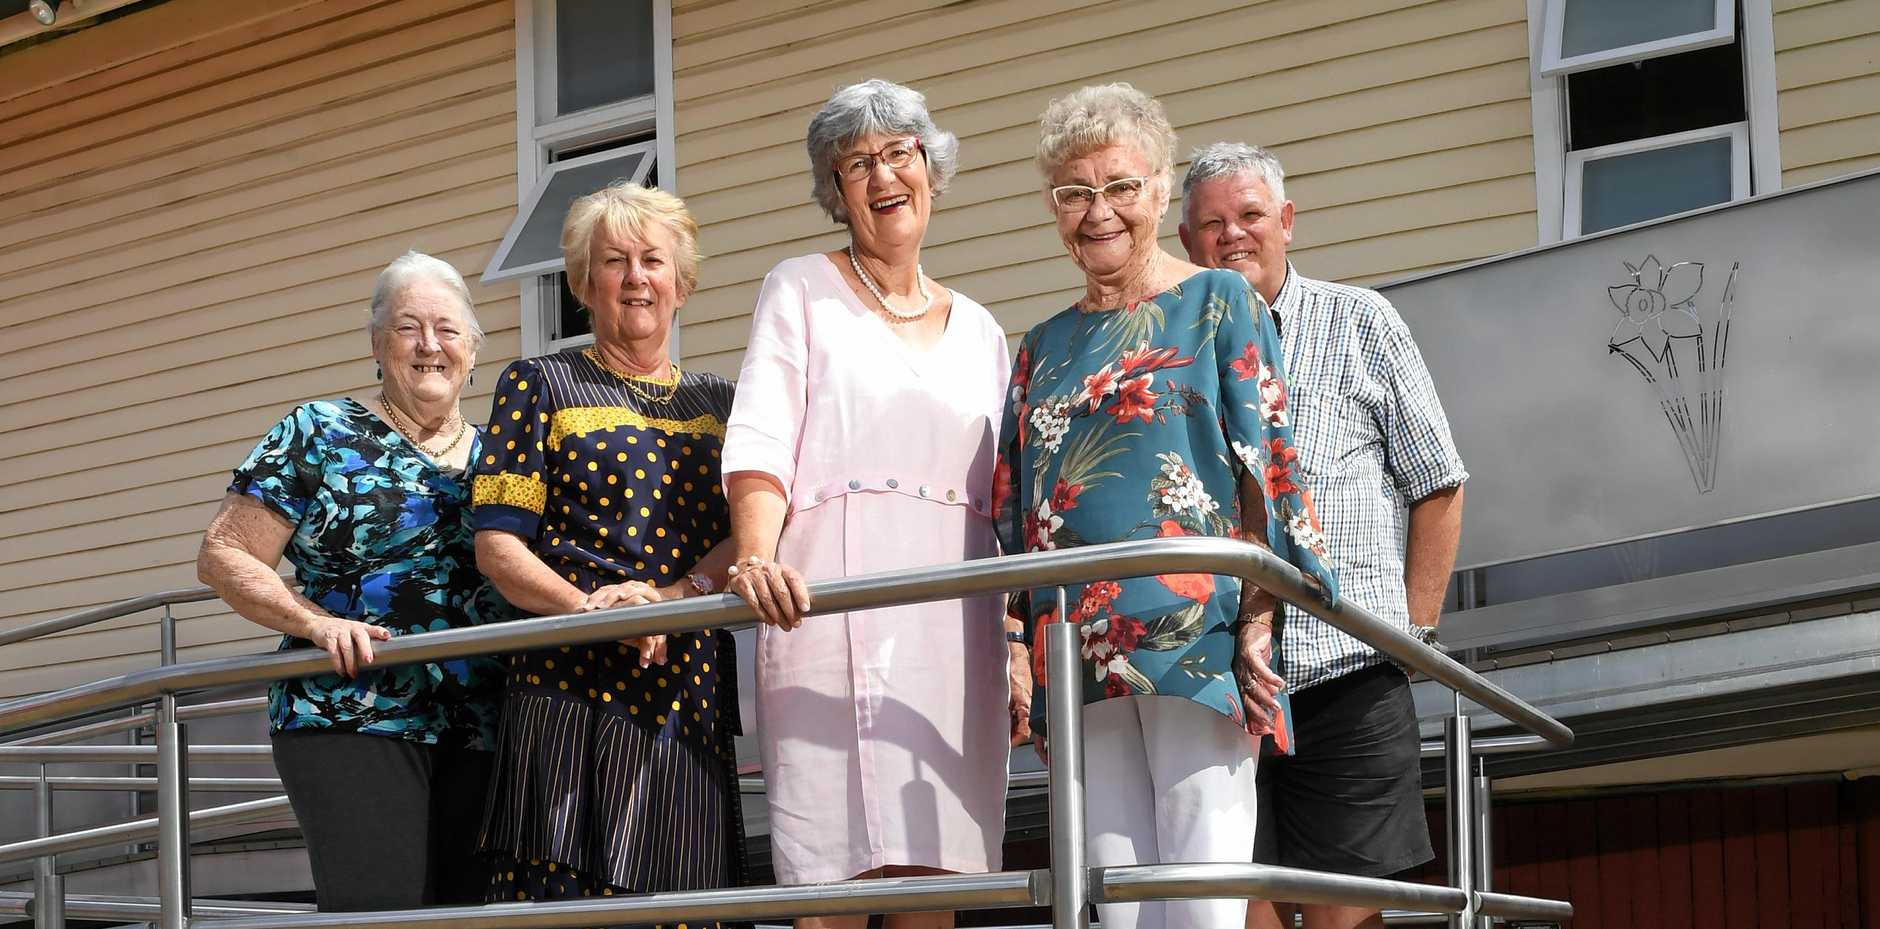 CONGREGATION: St David's Society secretary Annette Spilsbury, president Yvonne Daly, Church Management Committee chairman Eirys Jones, St David's Society committee member Olwen Arbuthnot and Church Management Committee secretary Errol George.